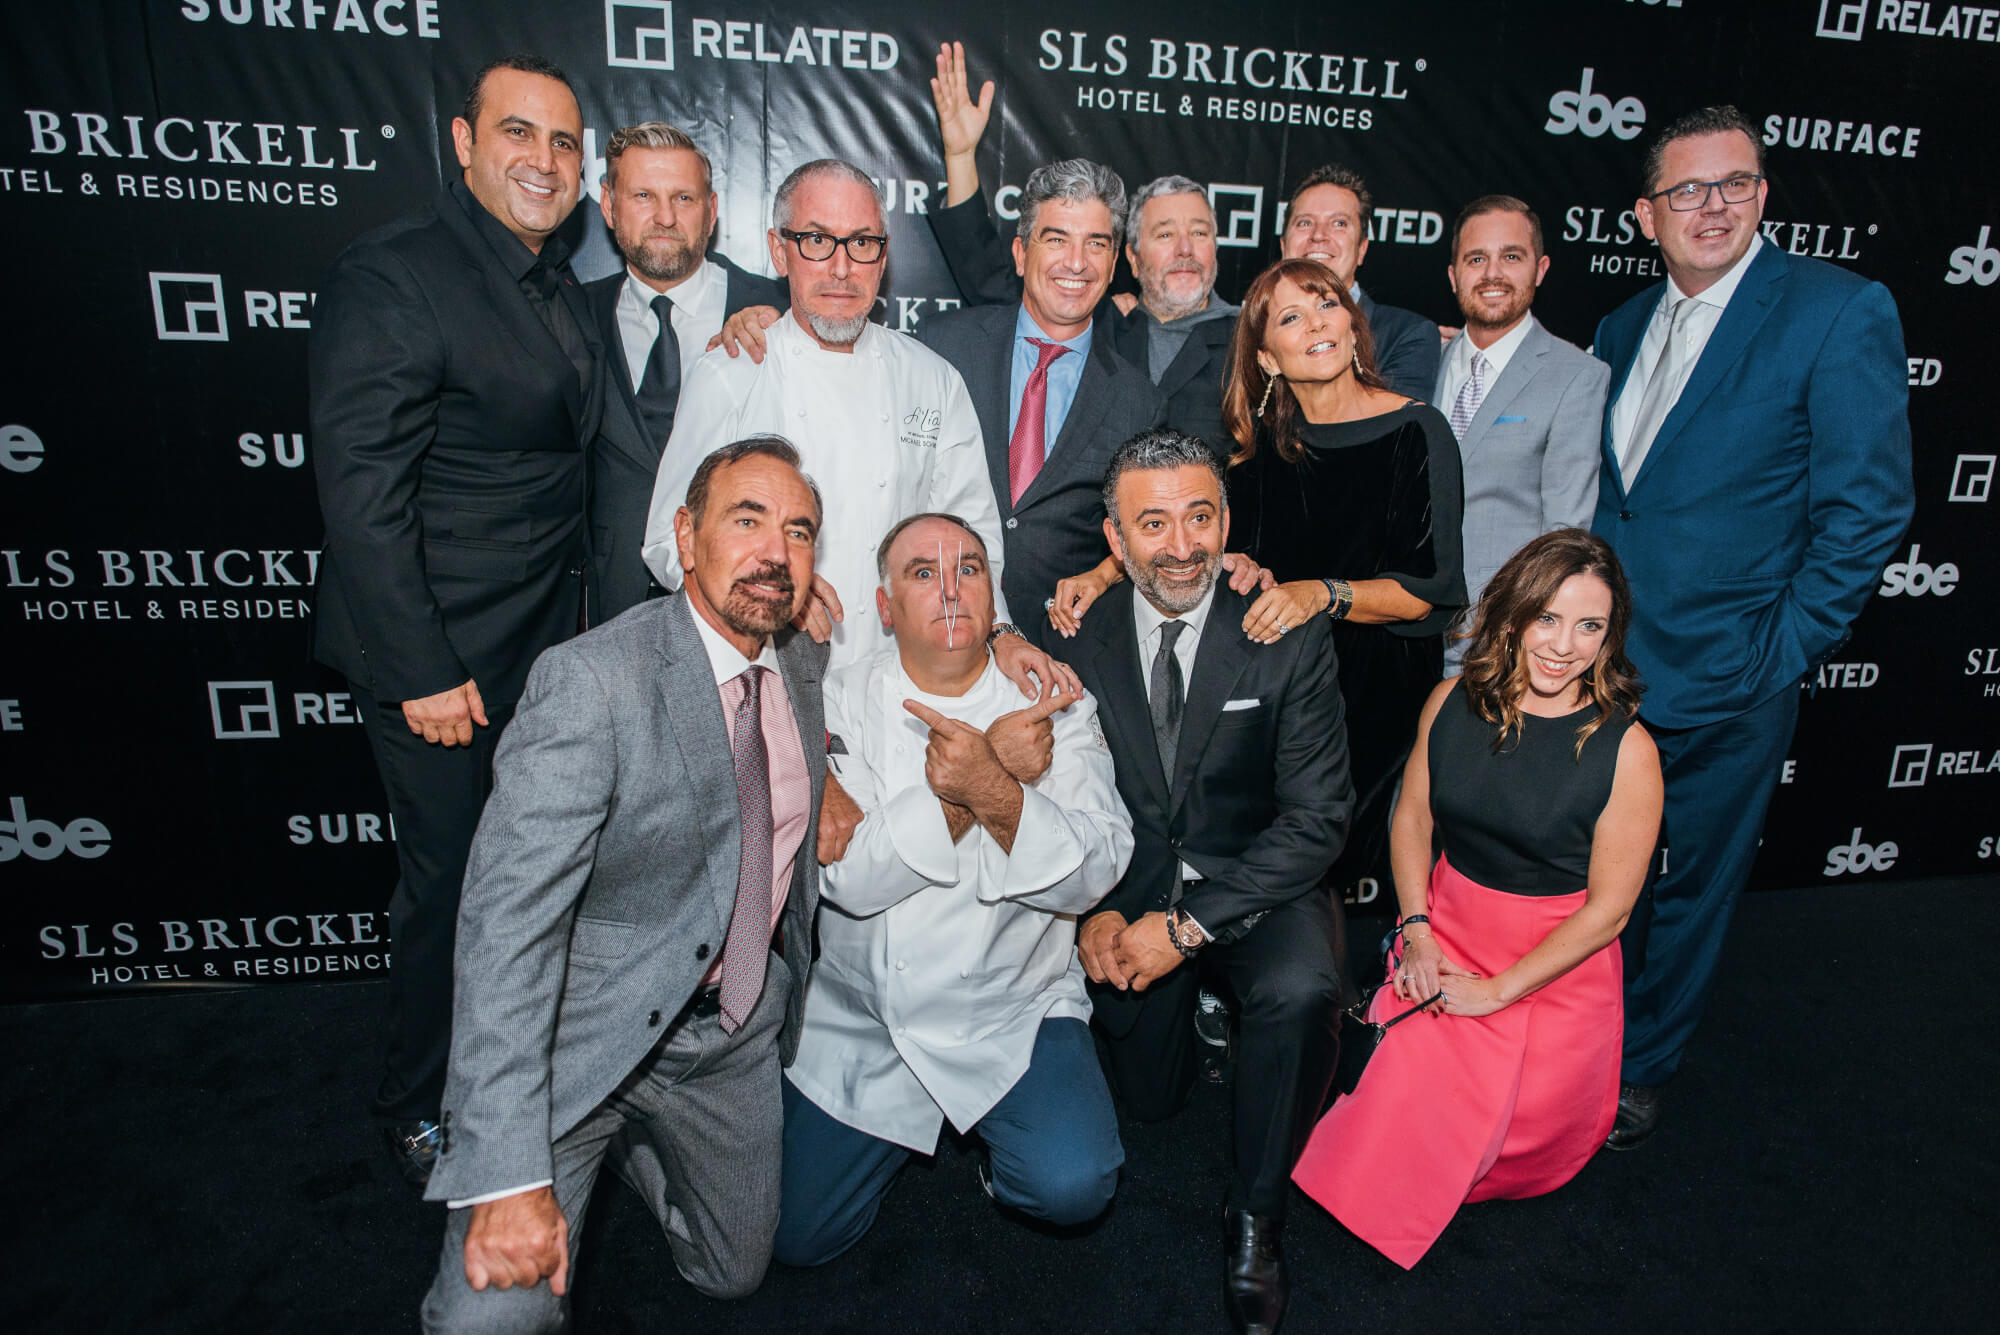 SLS BRICKELL, TIMELESS ELEGANCE, HUMOR, POETRY, AND PLAYFULNESS